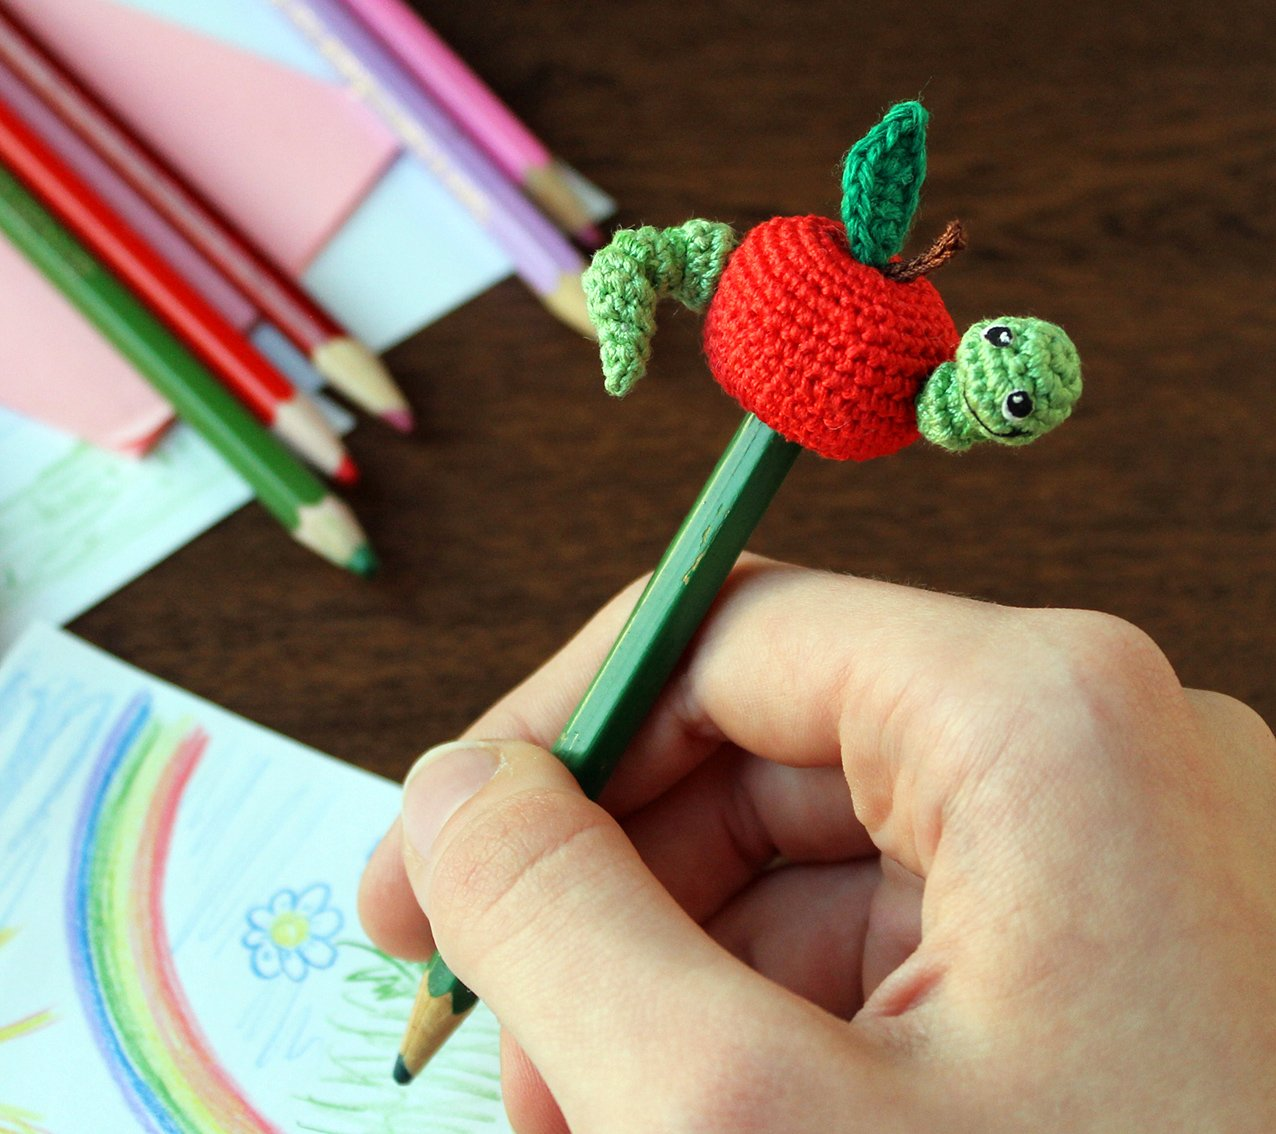 Apple and worm. Pencil decor.